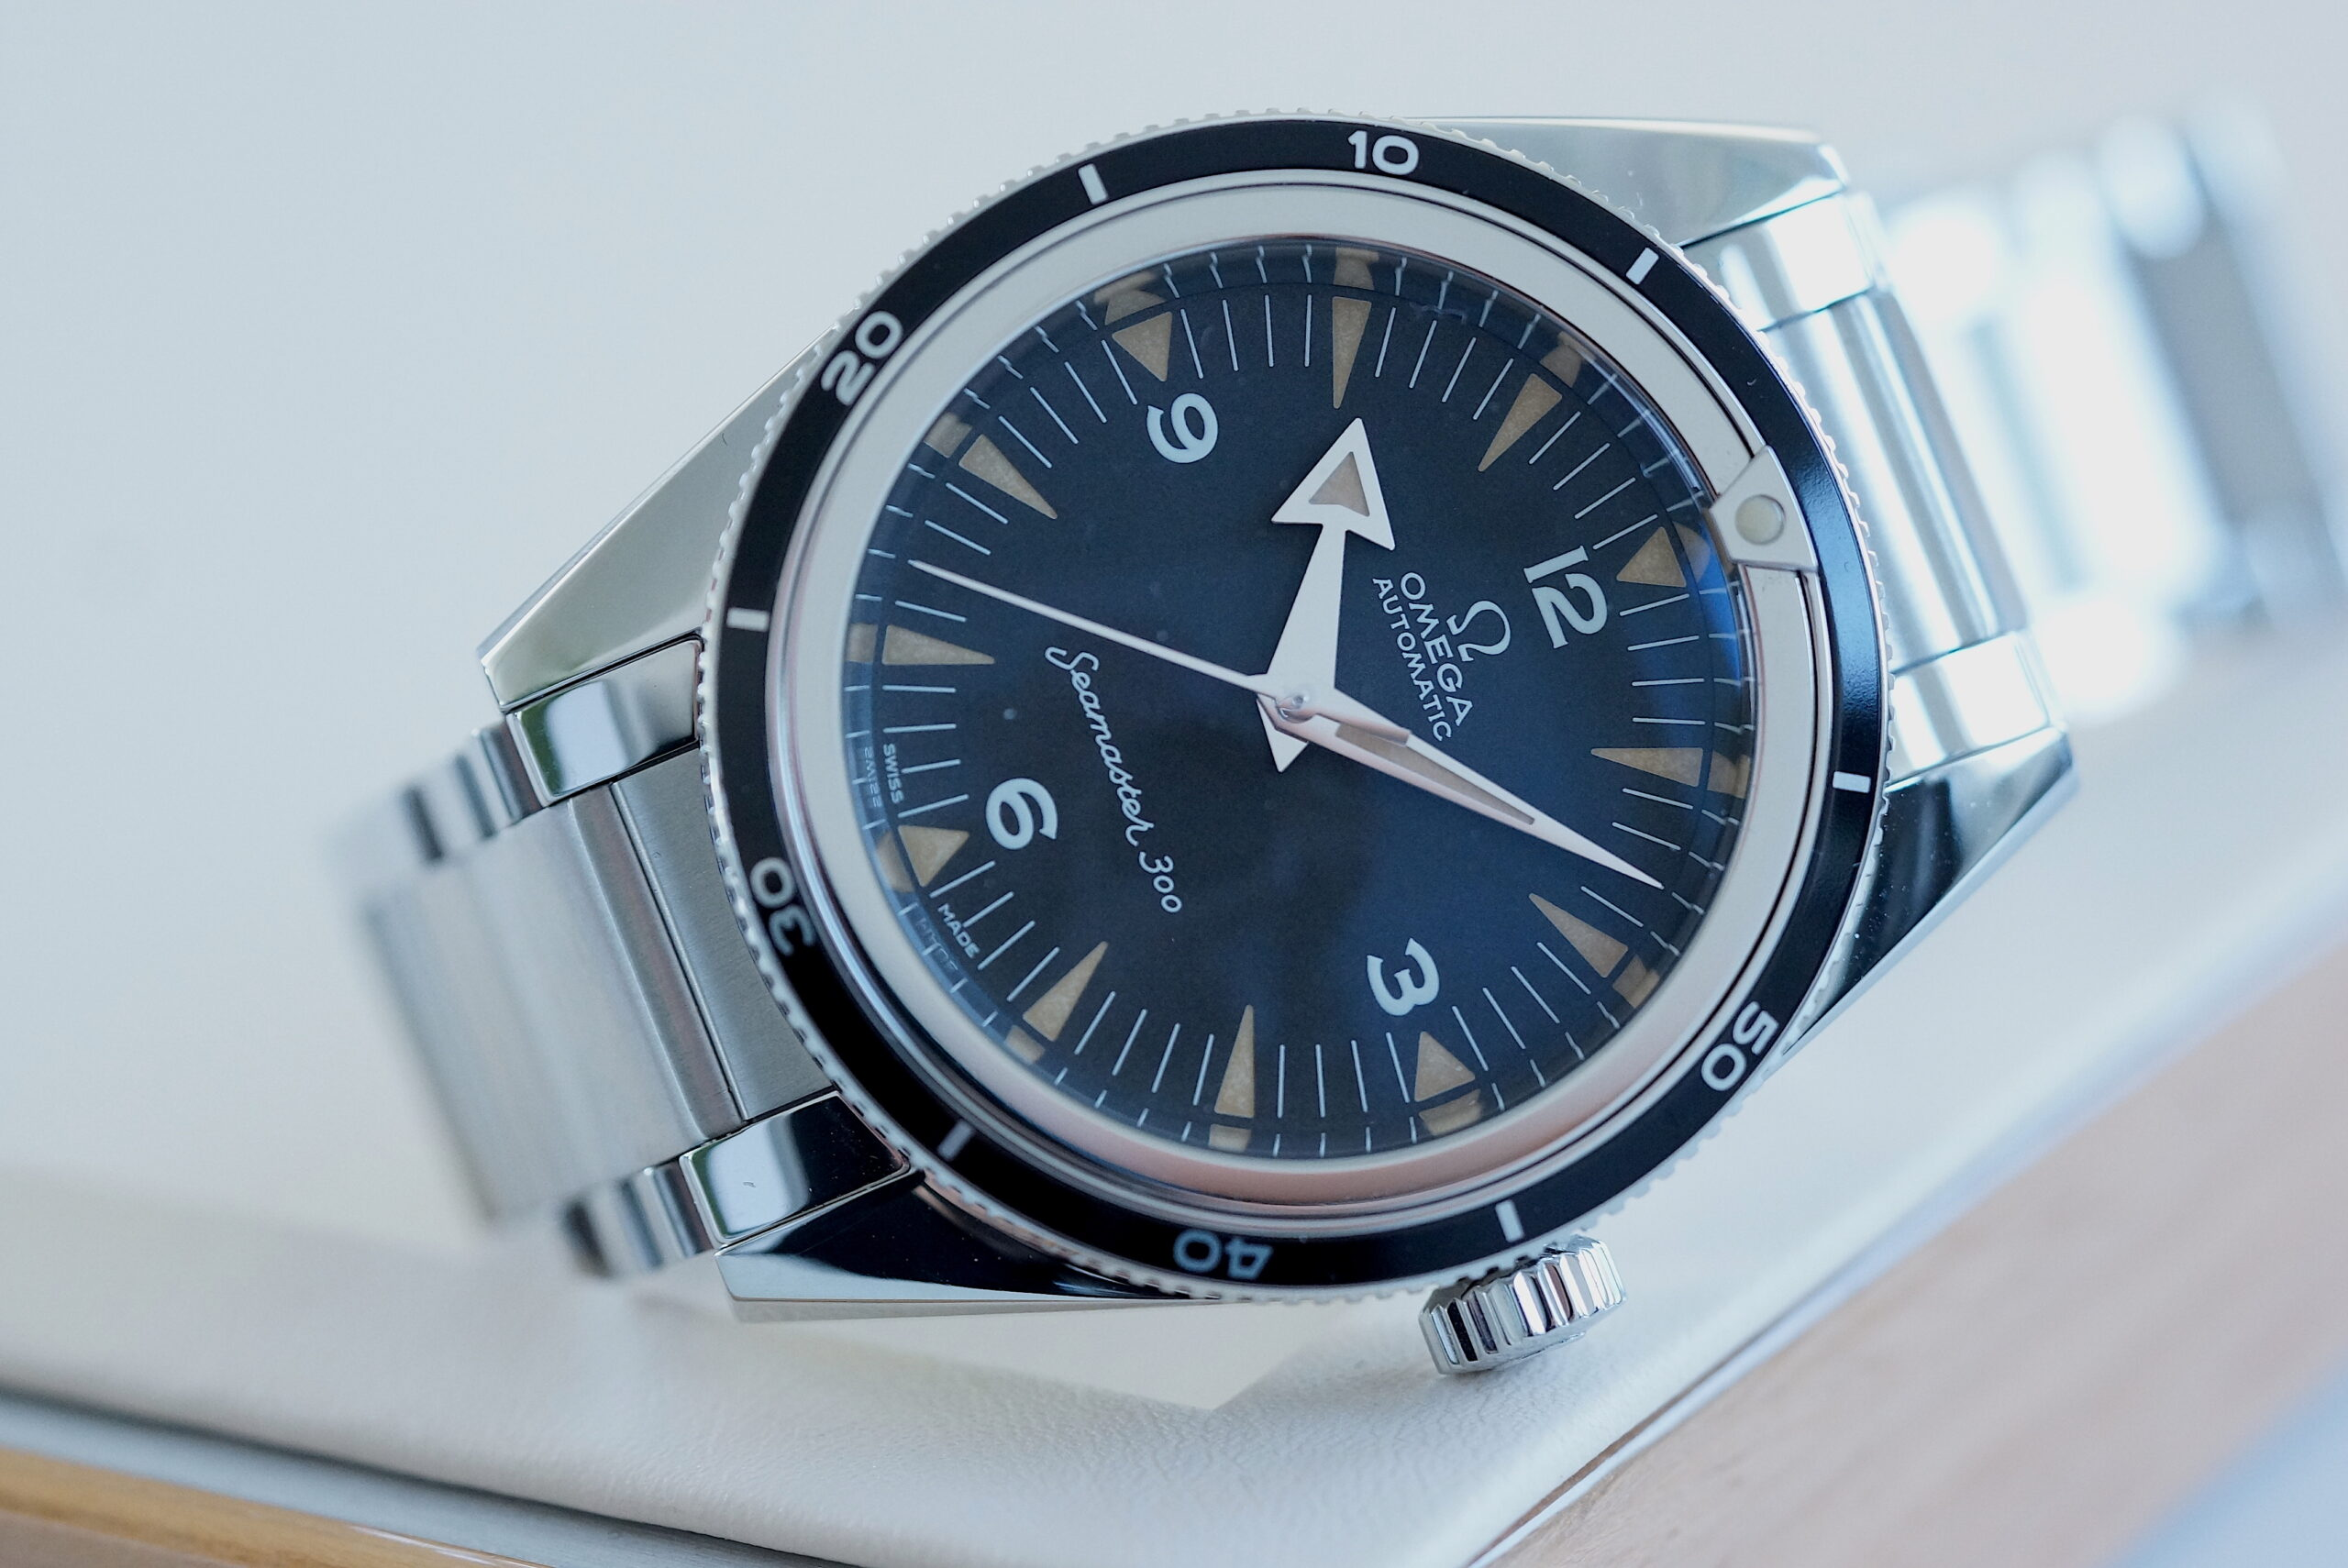 Omega 1957 Trilogy SEAMASTER 300 Master Co-Axial Chronometer